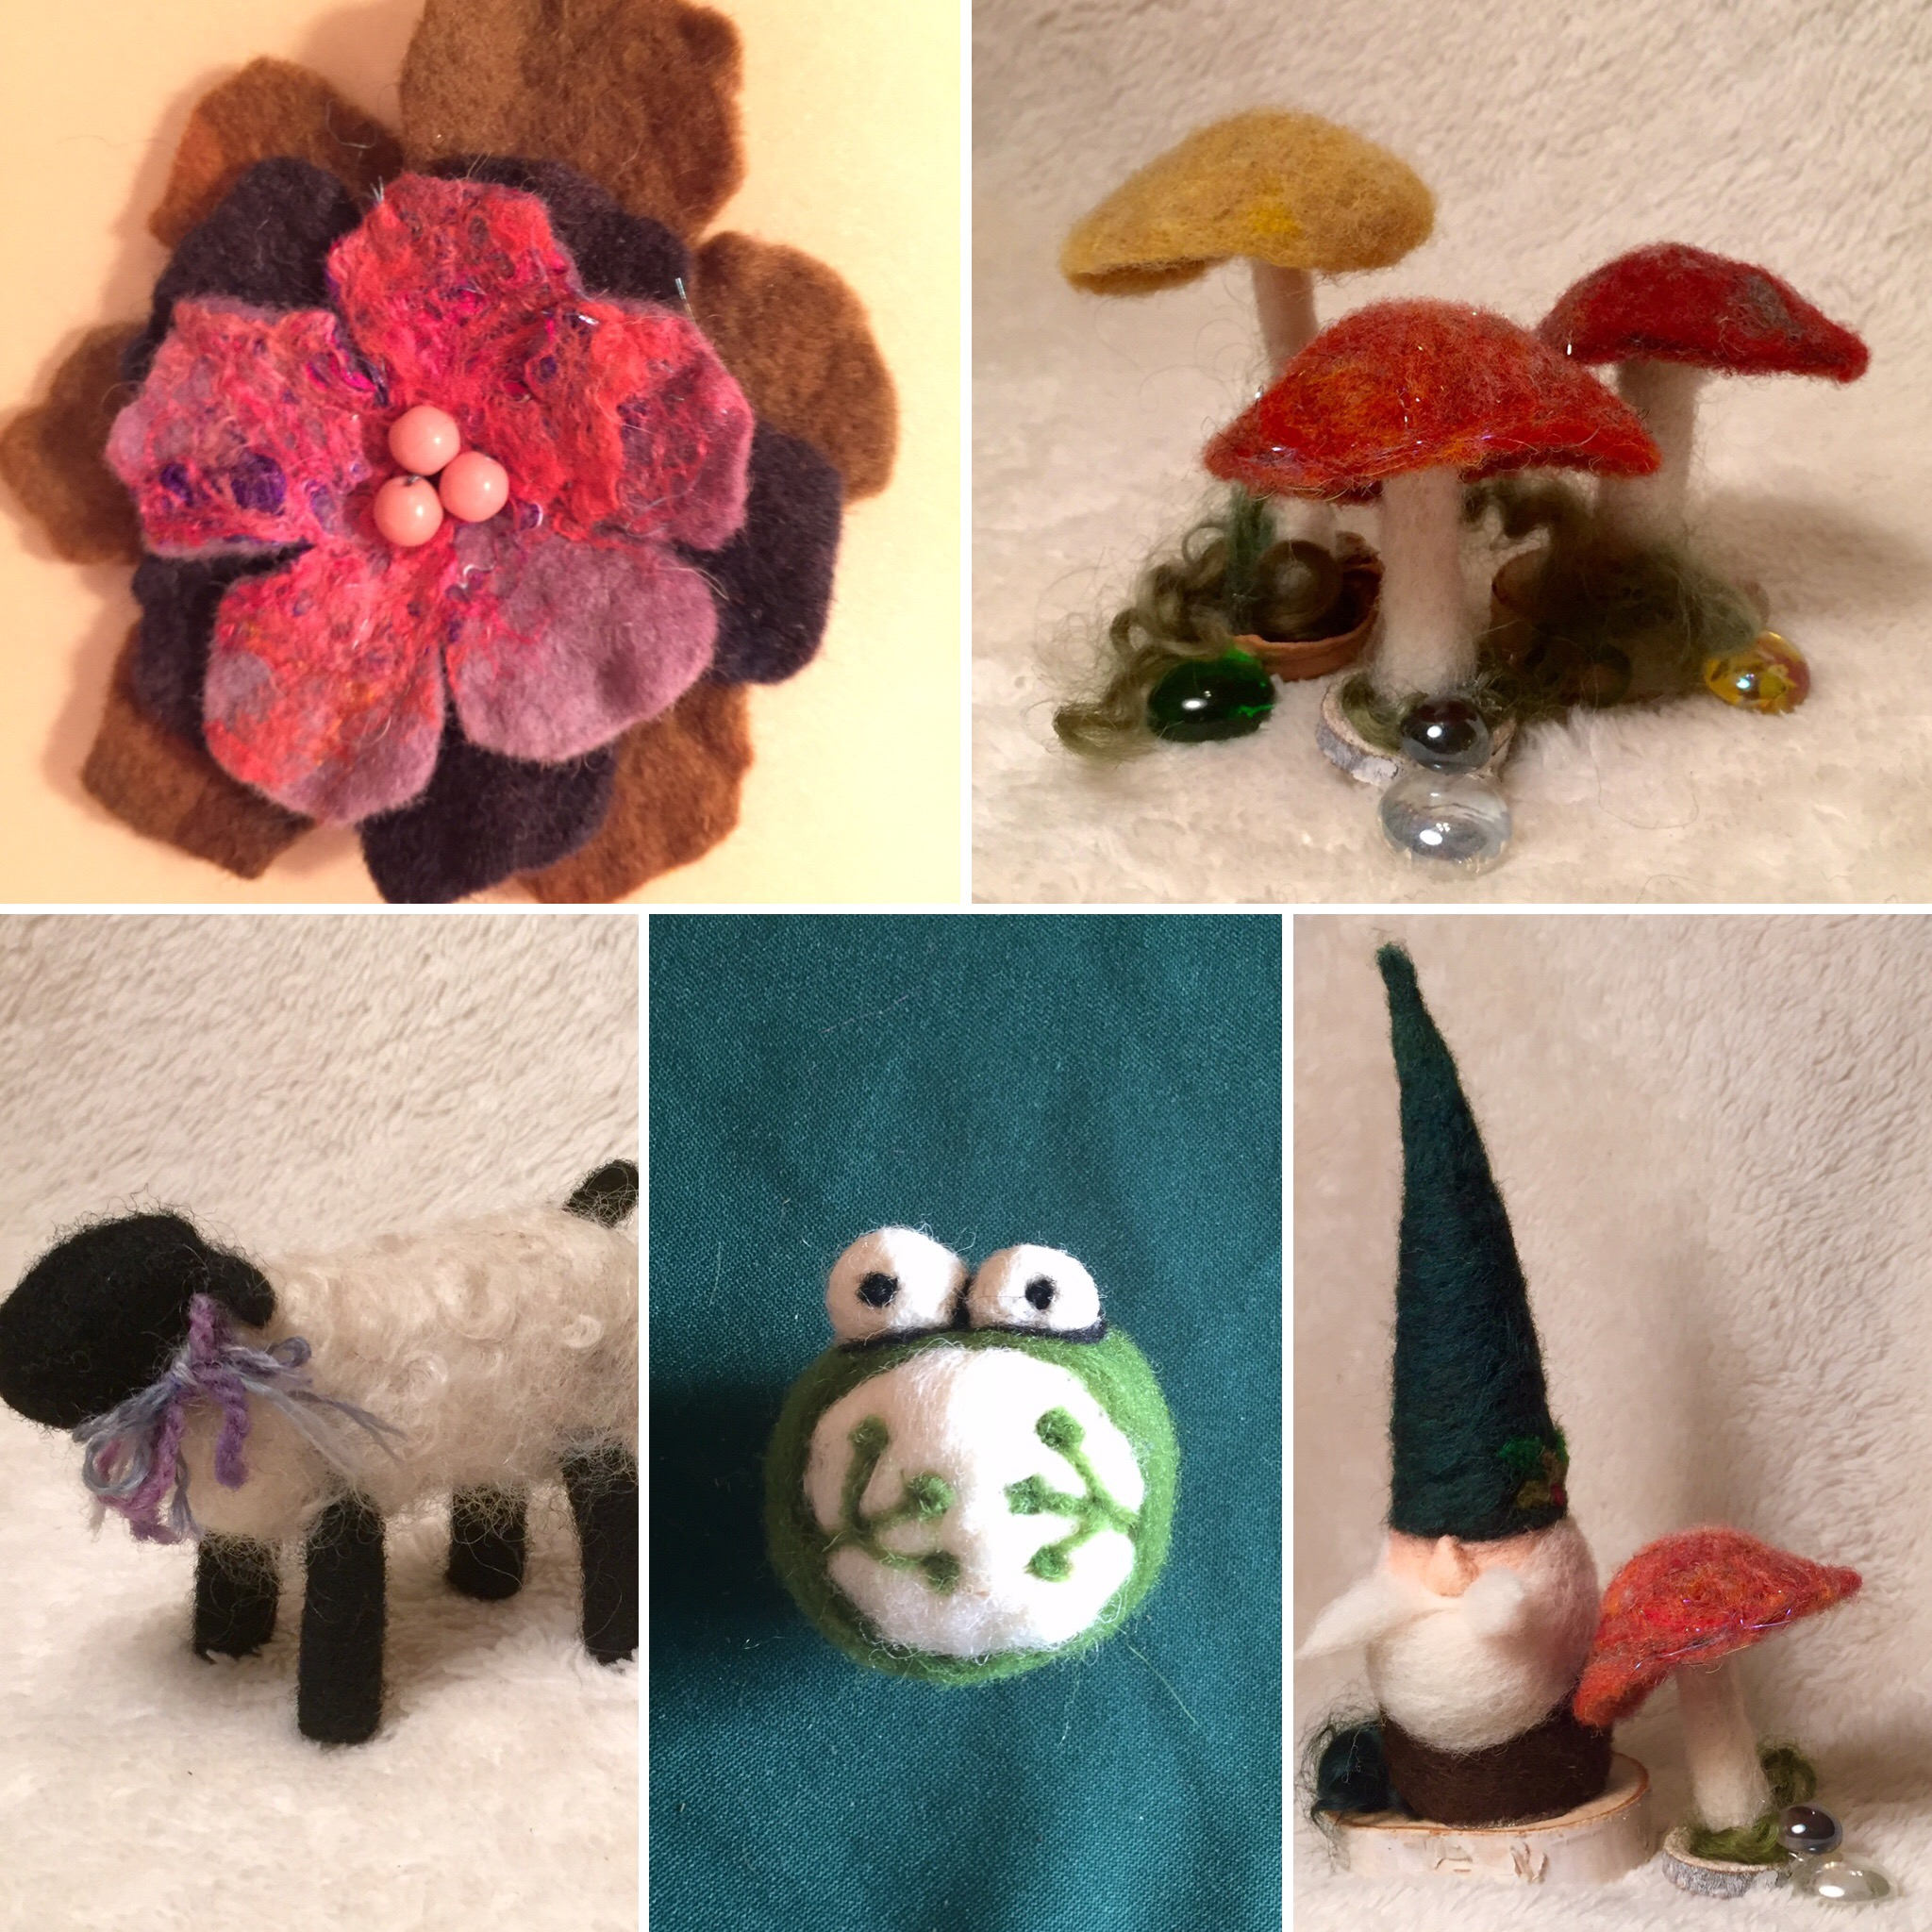 """Choose a make and take workshop with a needle or wet felting project. This is about an hour ( or tailored to your time frame), includes all necessary supplies, and can accommodate up to 35 in a class.  Click here  and scroll down to """"Craft Projects"""" . One project would be selected for the group. We can help suggest or tailor a project to your group! We do have minimum and maximum numbers for participants. $10 / participant, plus travel"""